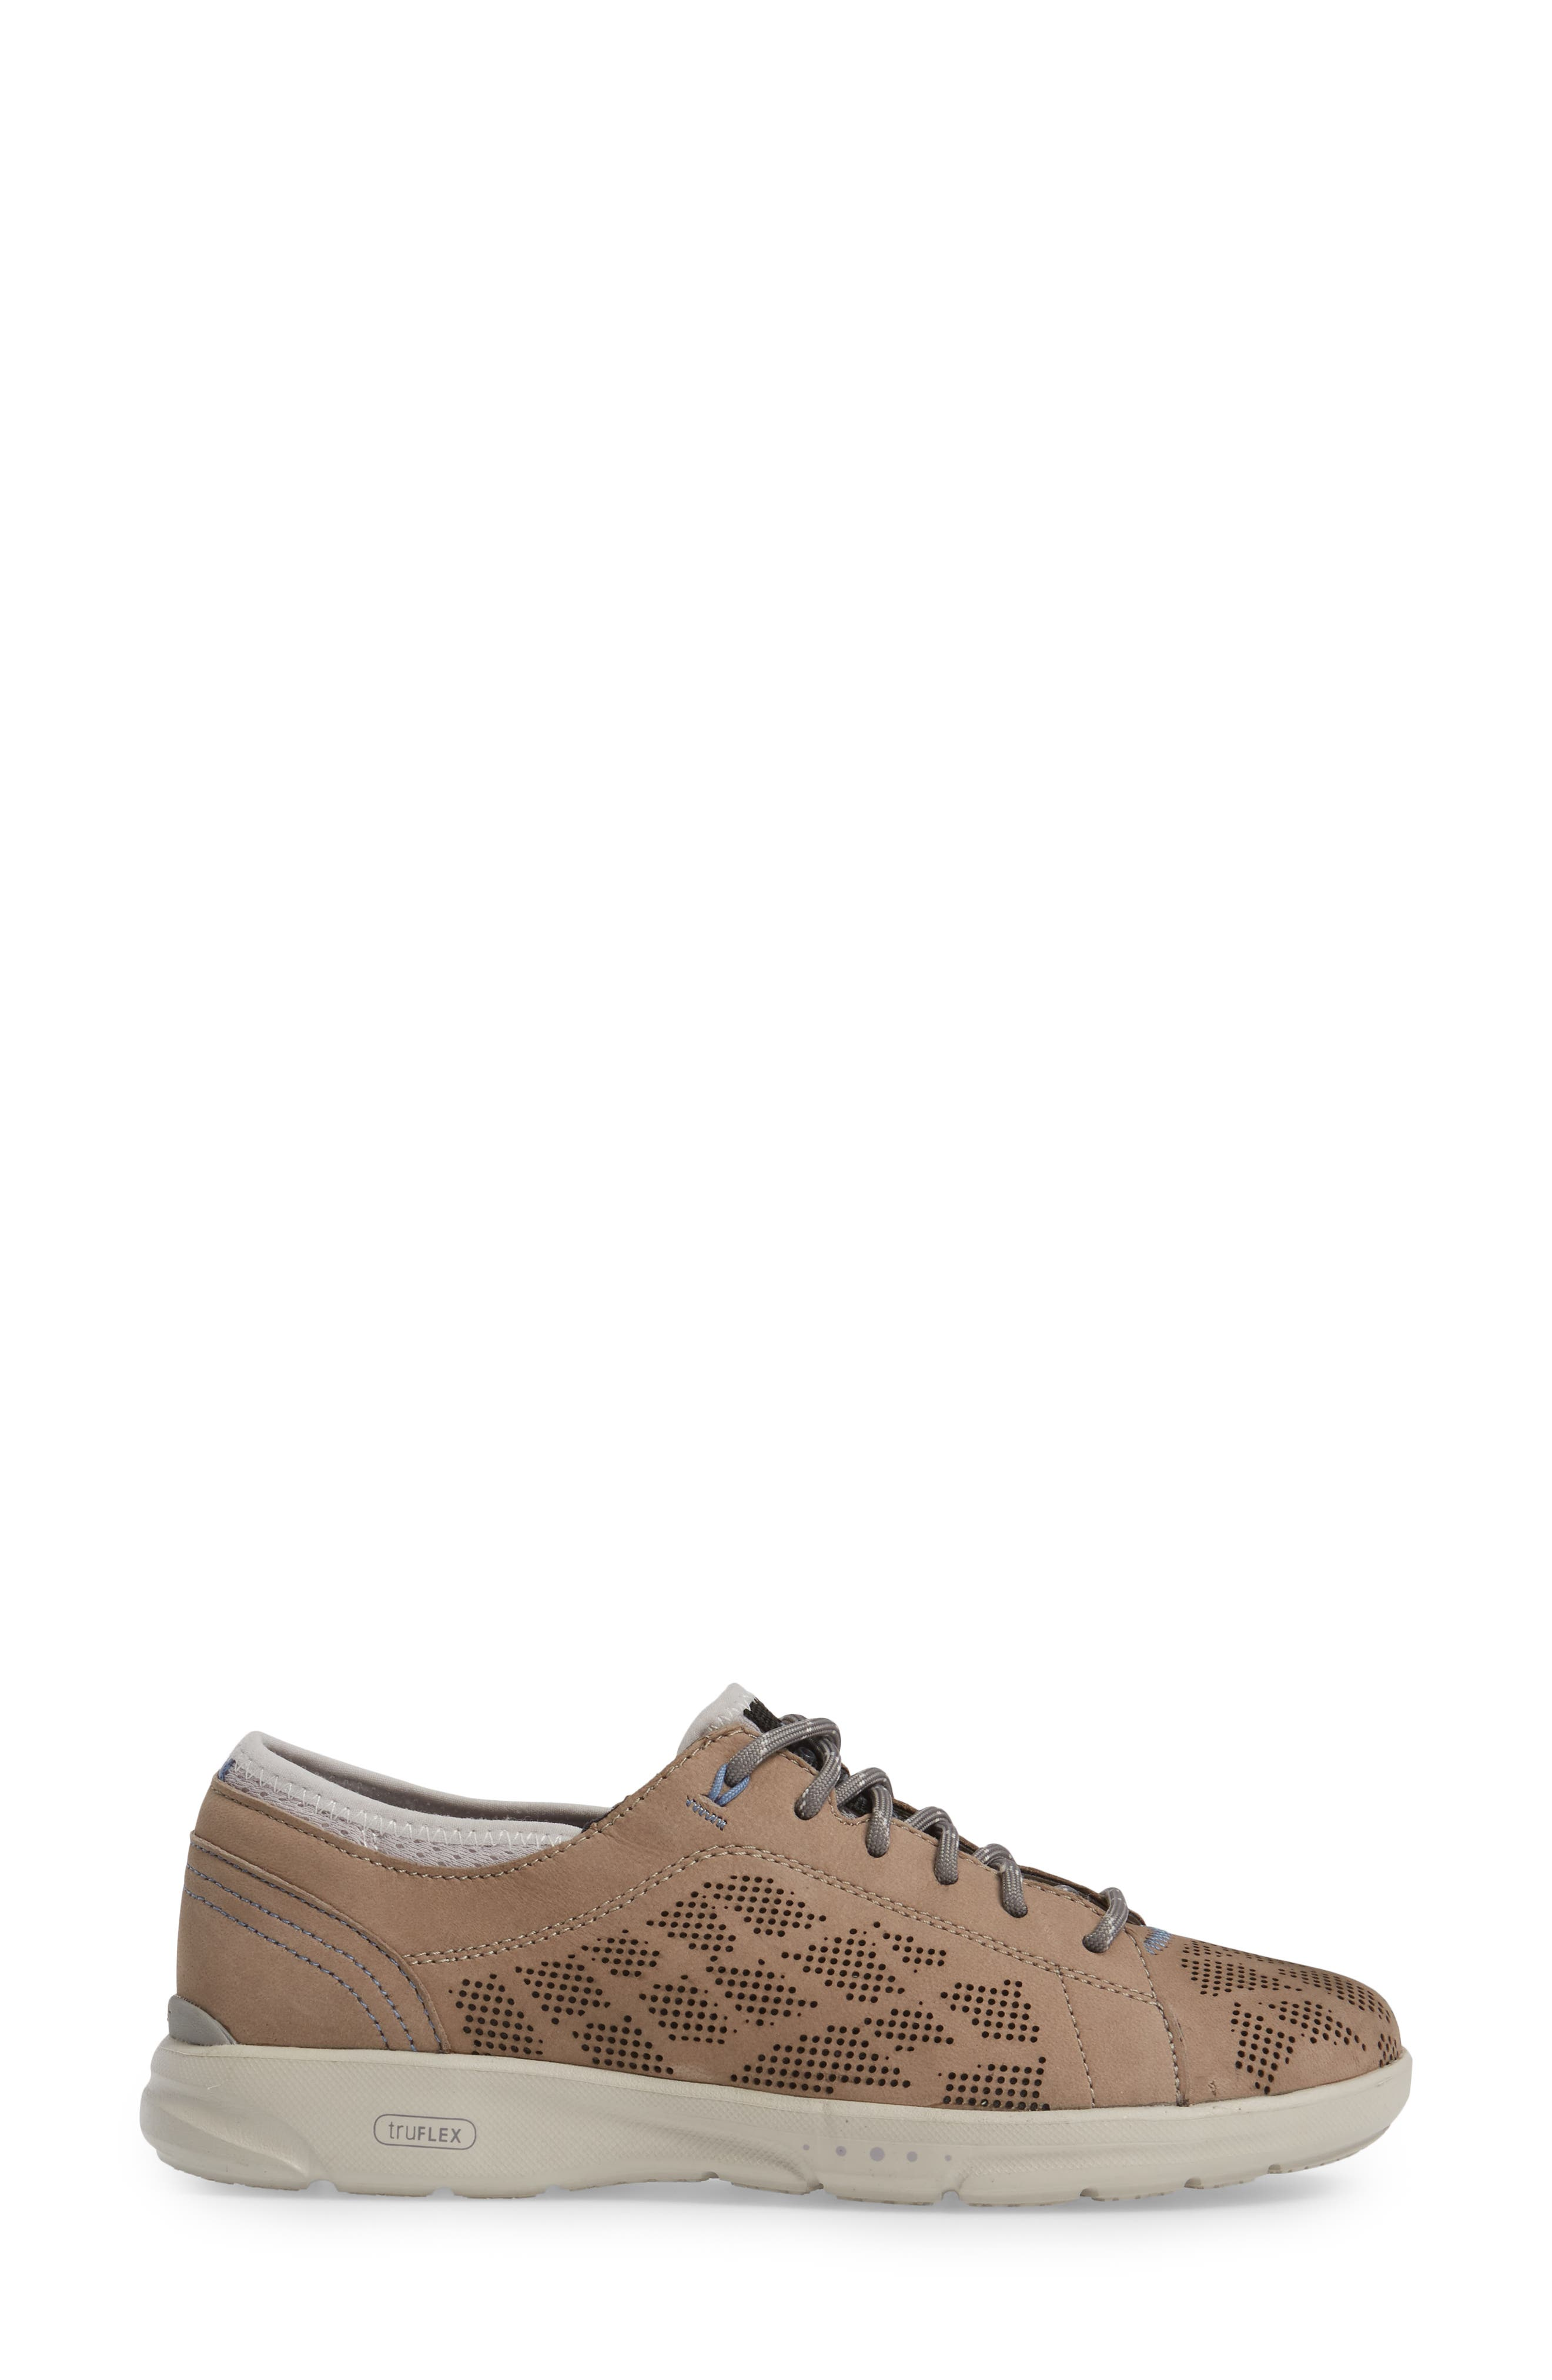 truFLEX Perforated Sneaker,                             Alternate thumbnail 3, color,                             Sand Leather